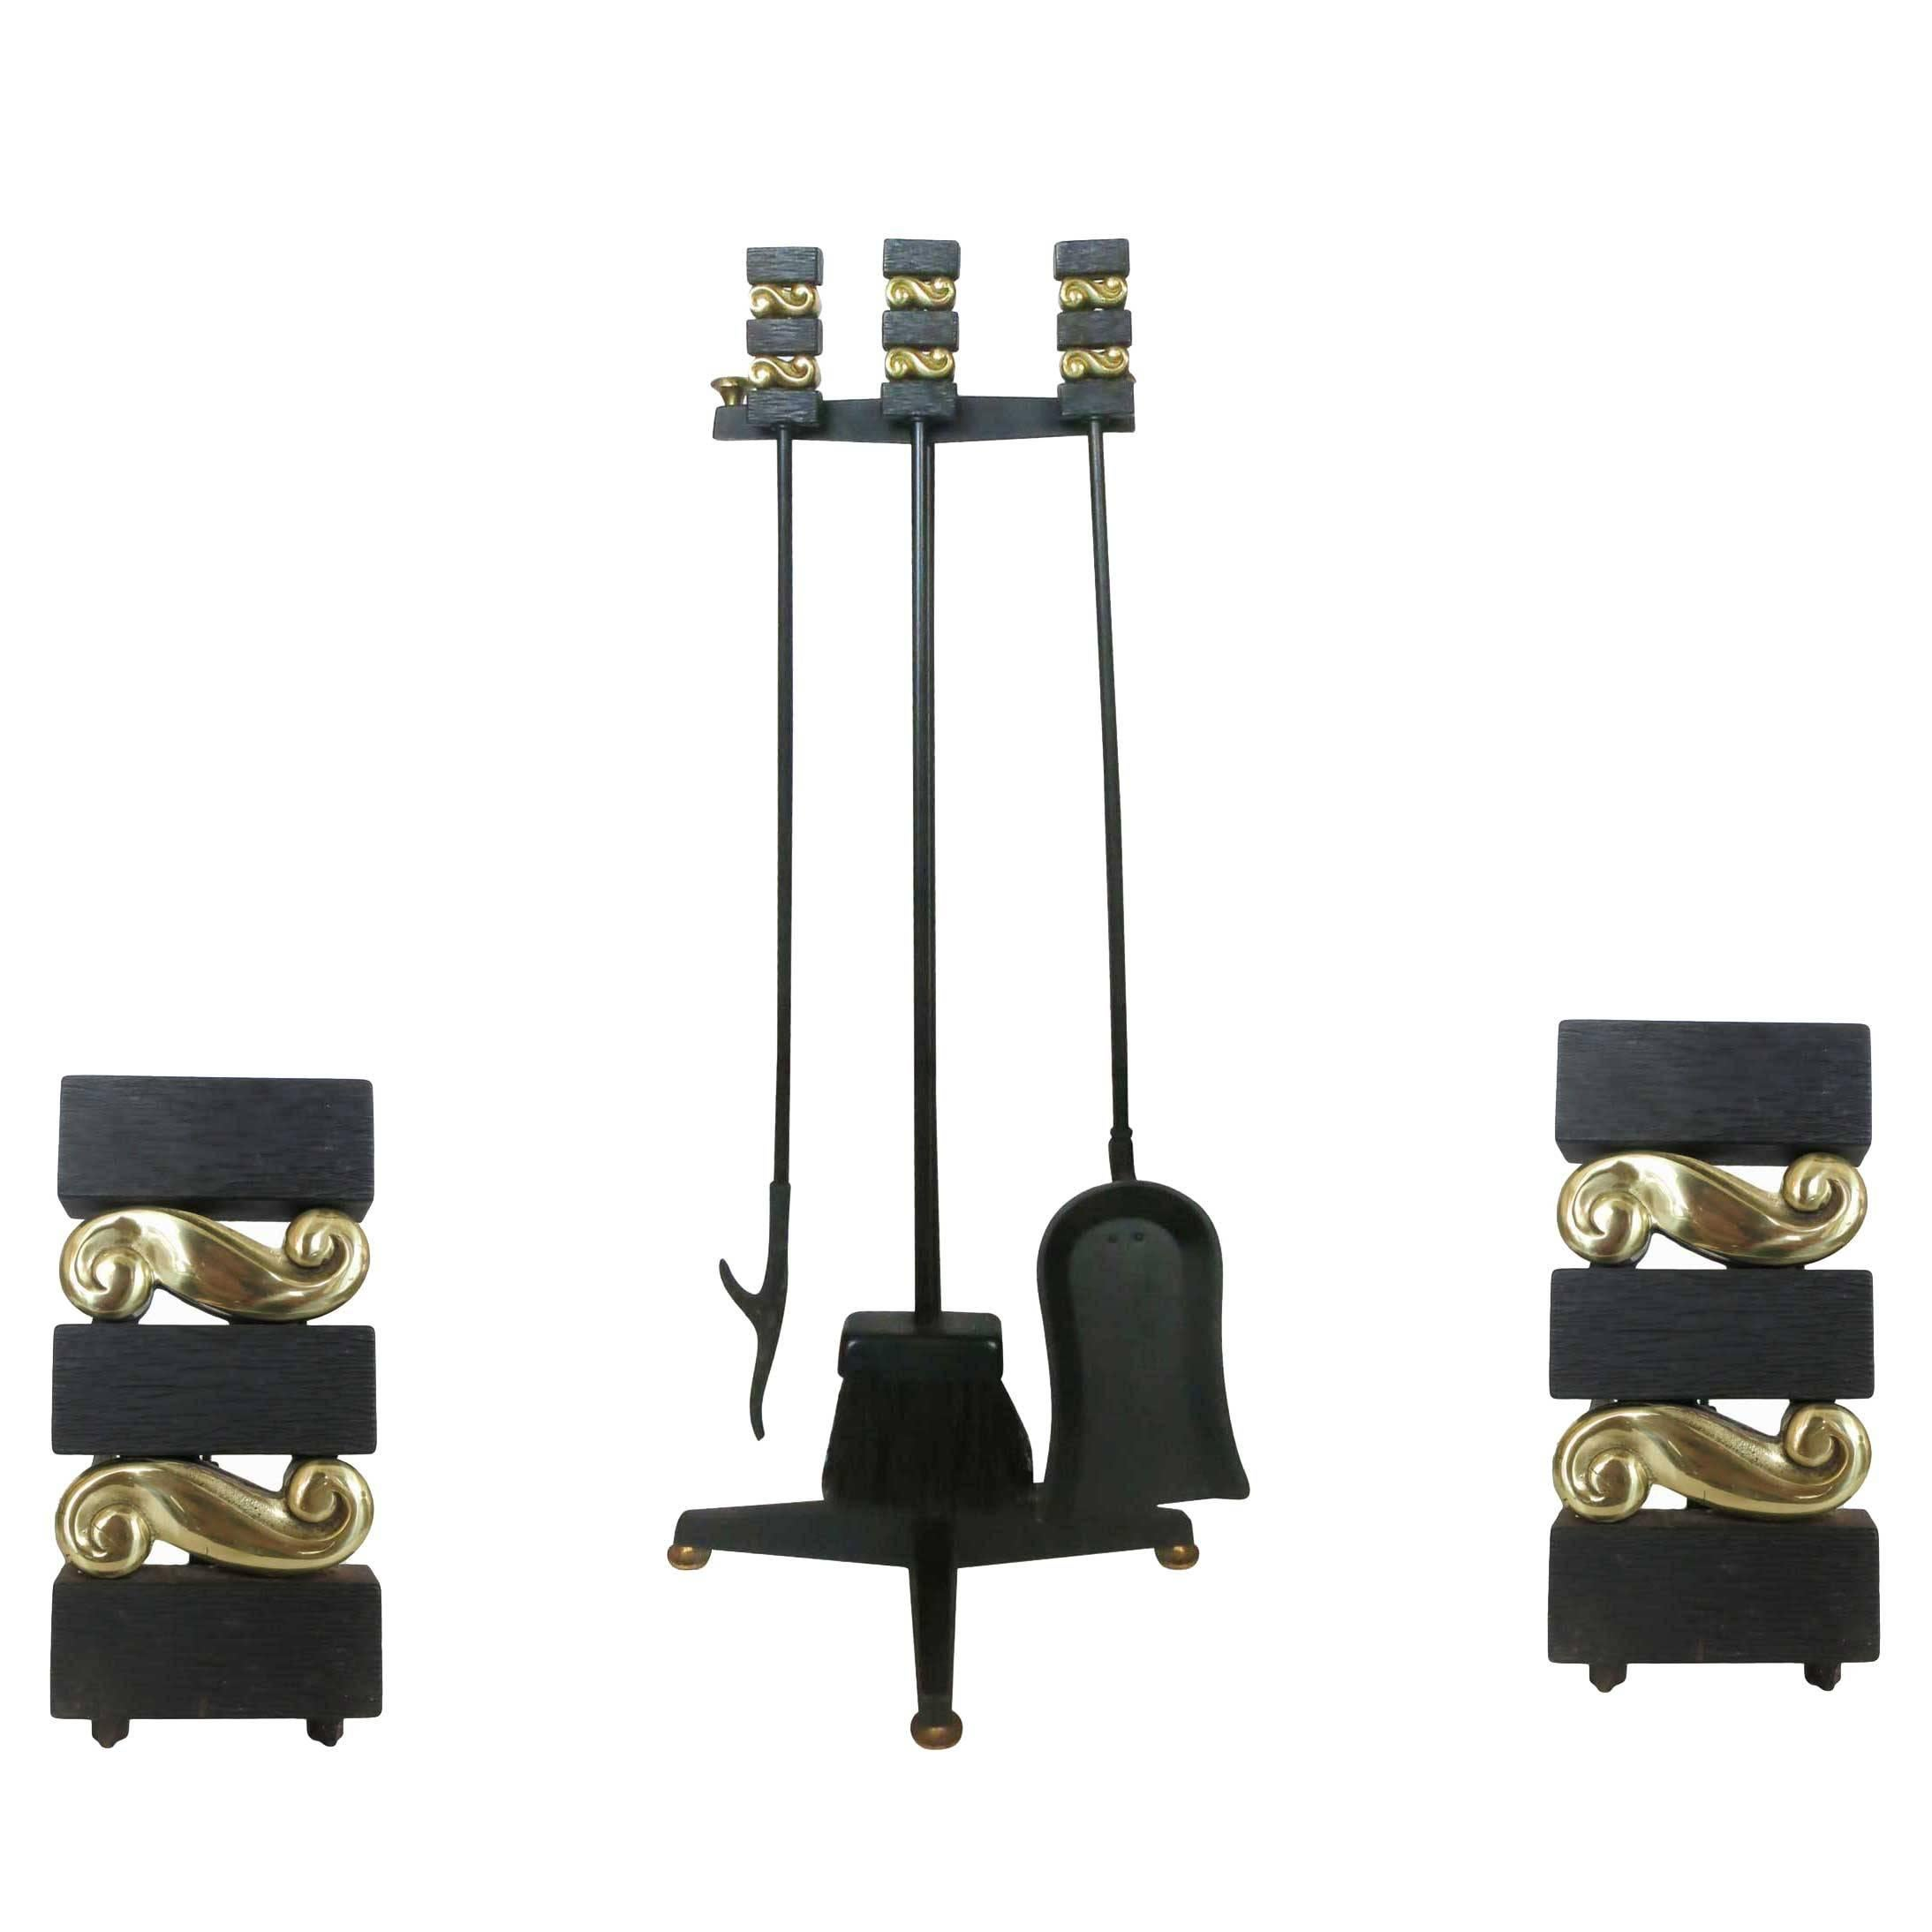 Donald Deskey Andirons and Fireplace Tools by Bennett Co